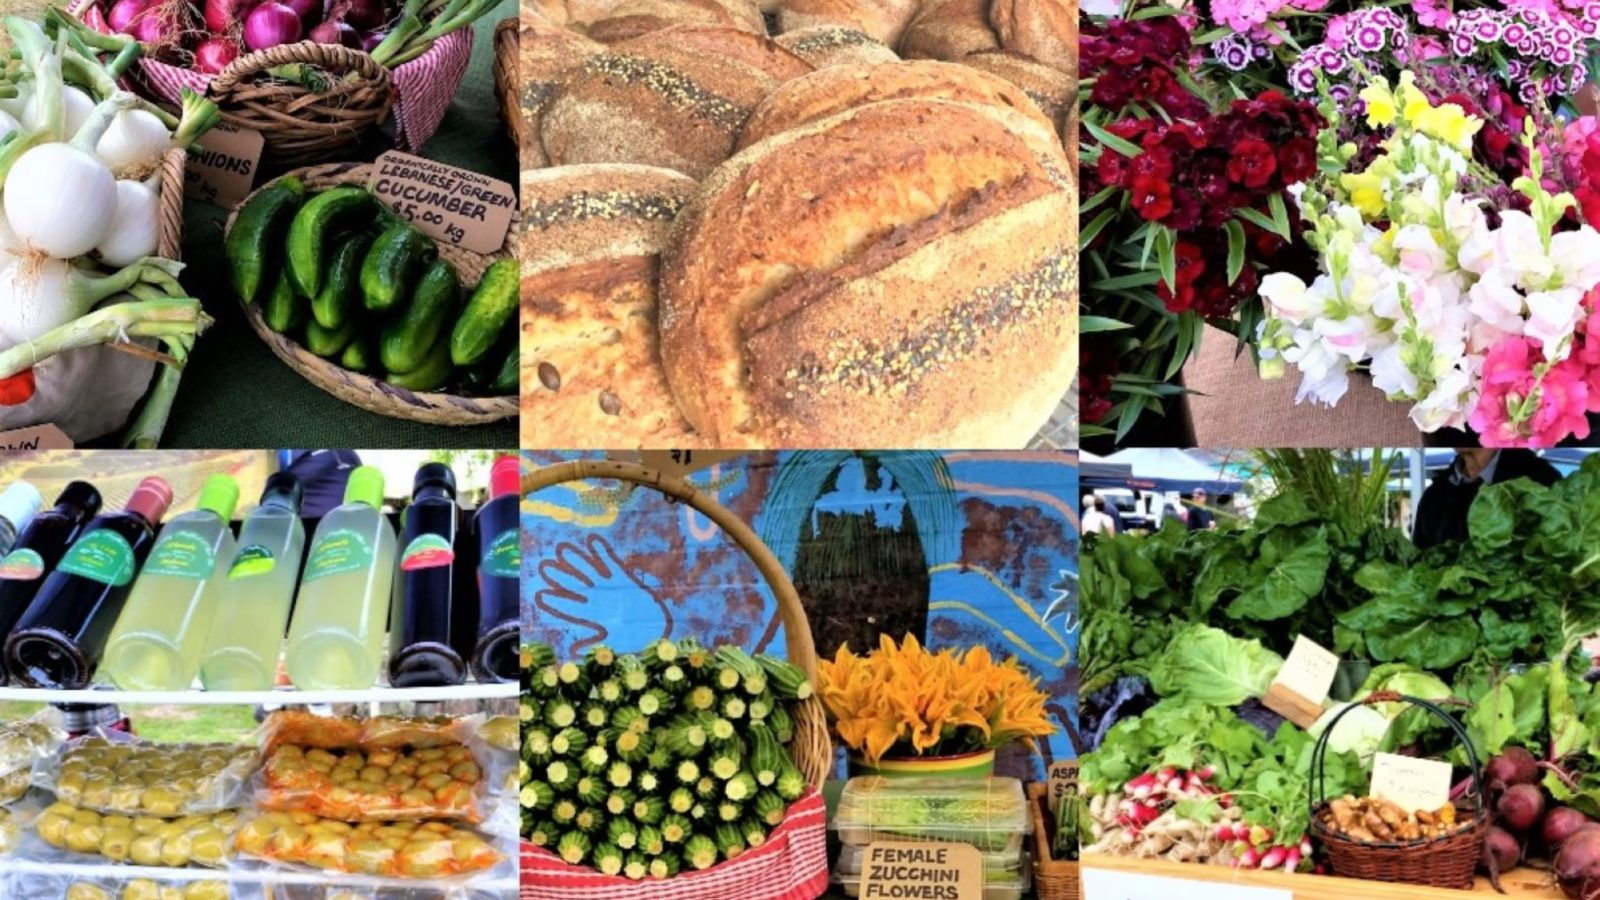 Forster Farmers Market photo collage of produce